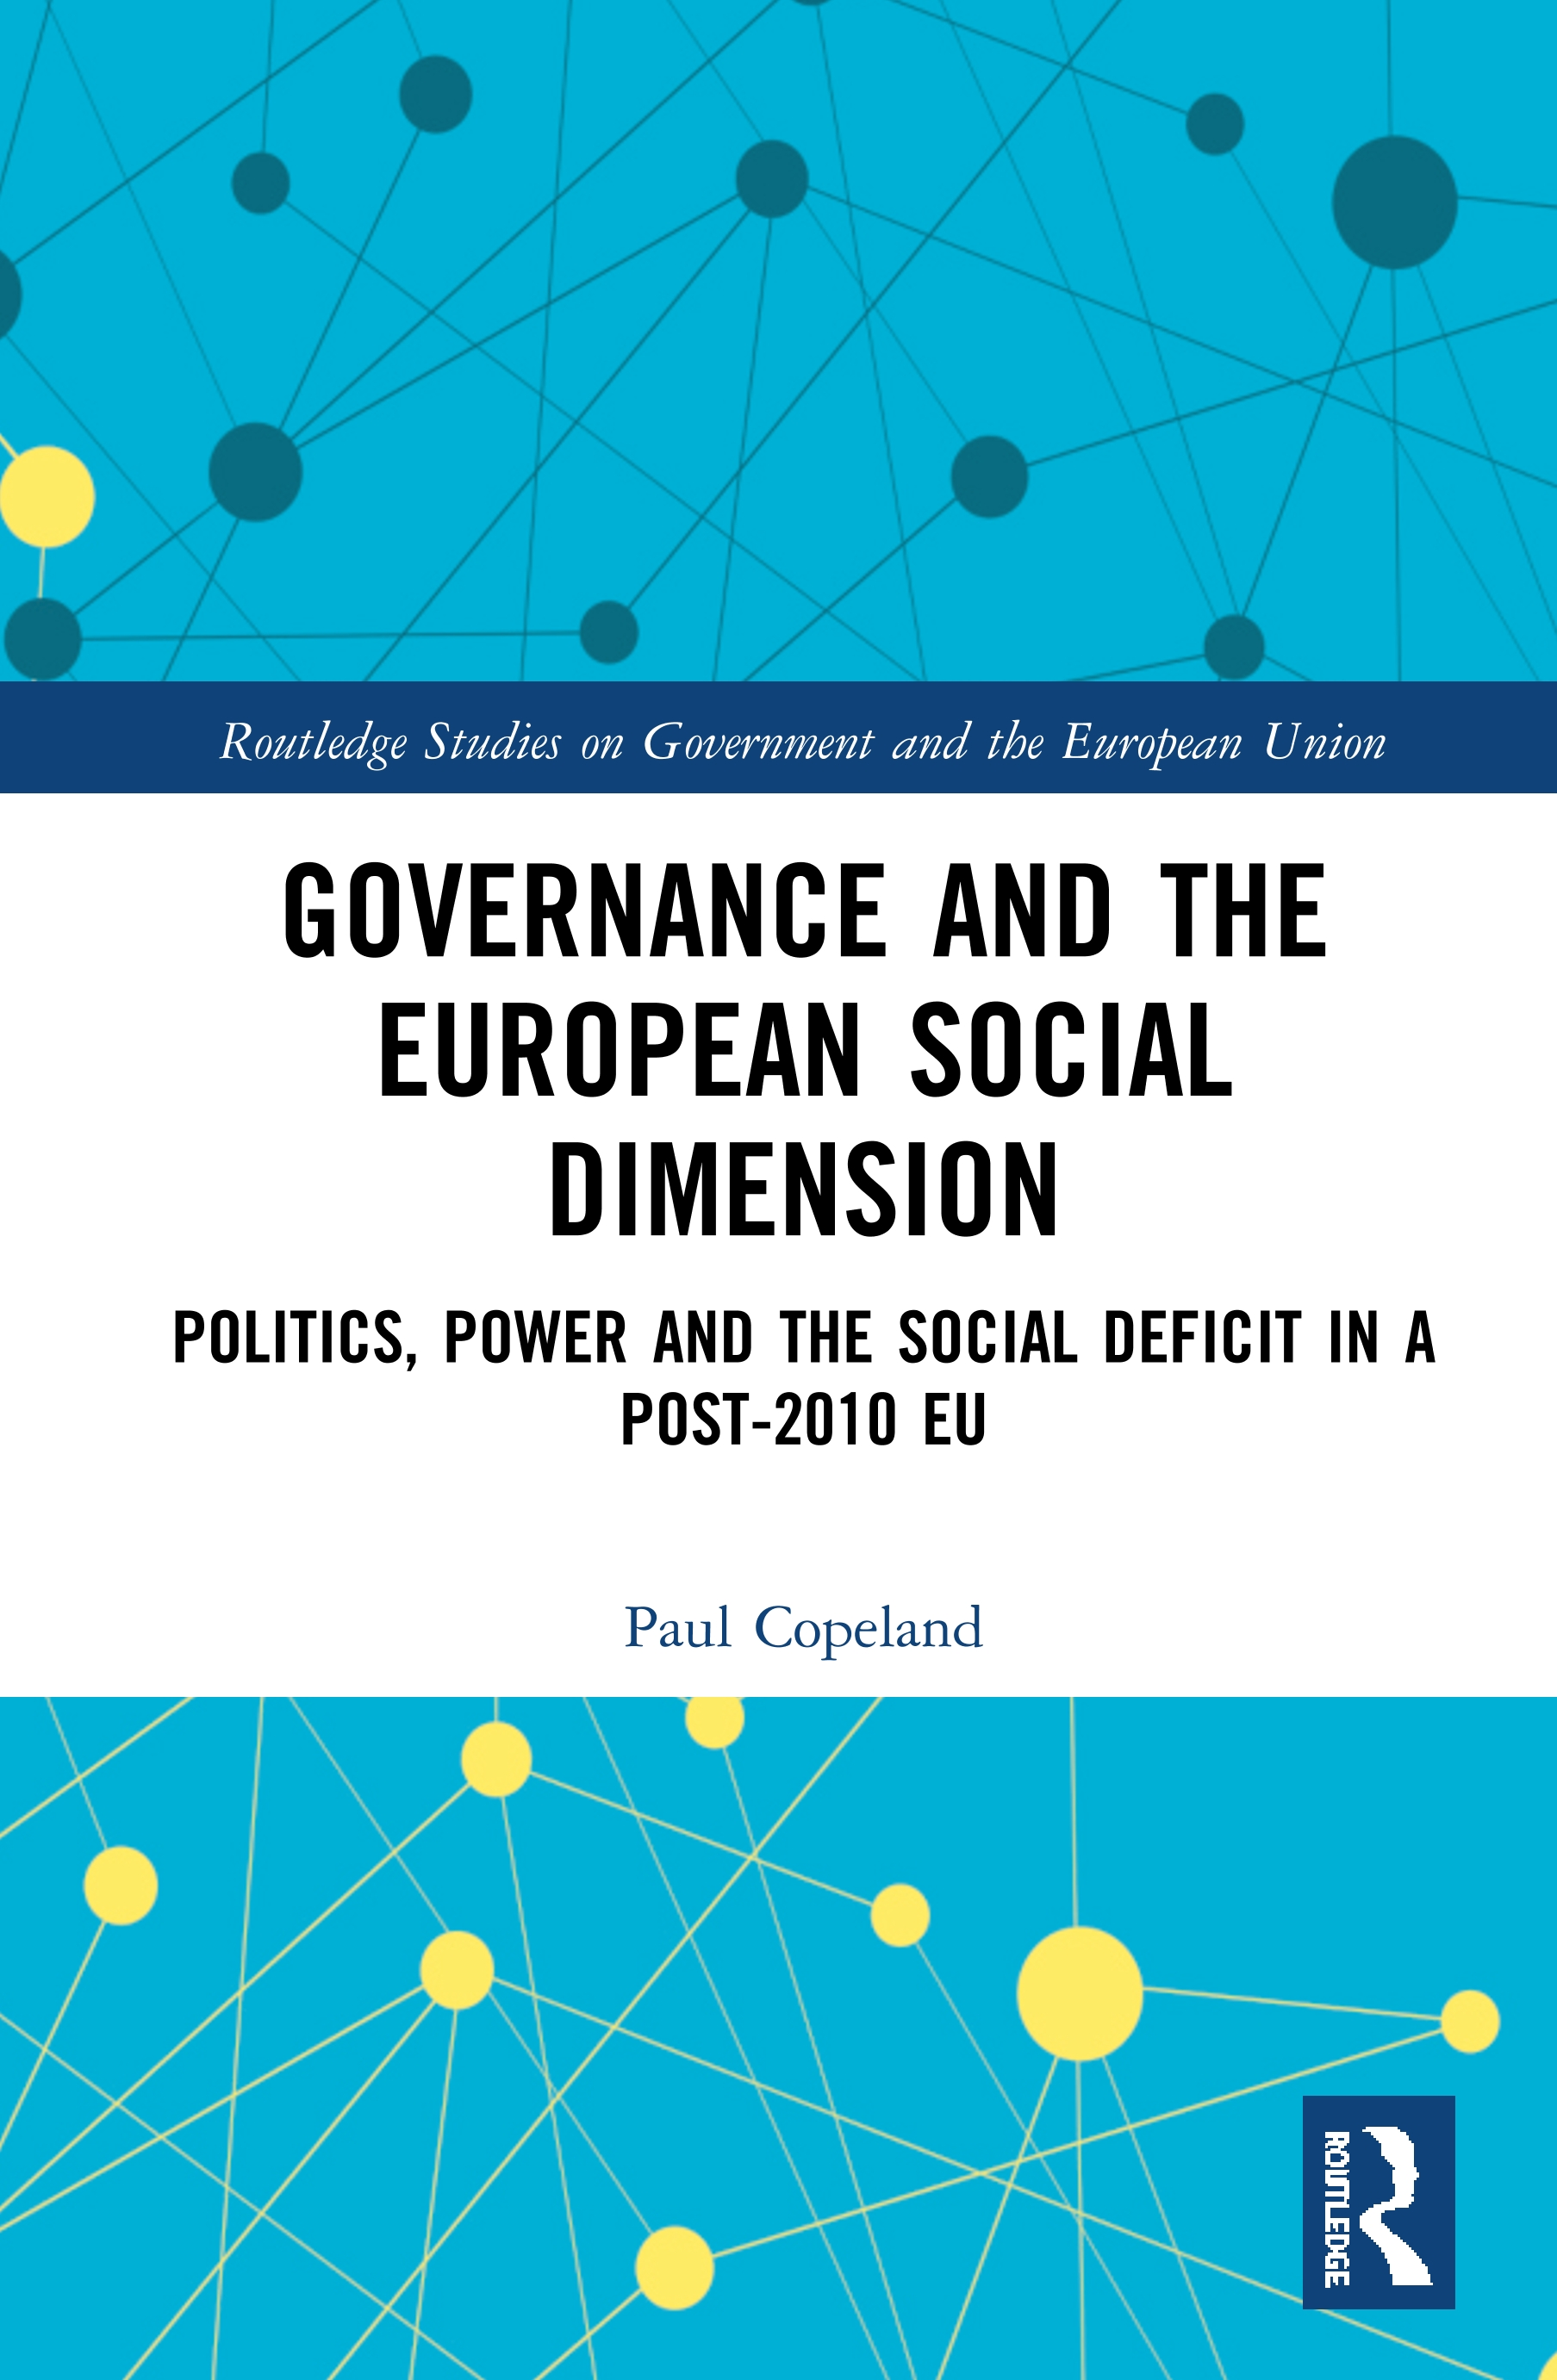 Governance and the European Social Dimension: Politics, Power and the Social Deficit in a Post-2010 EU book cover